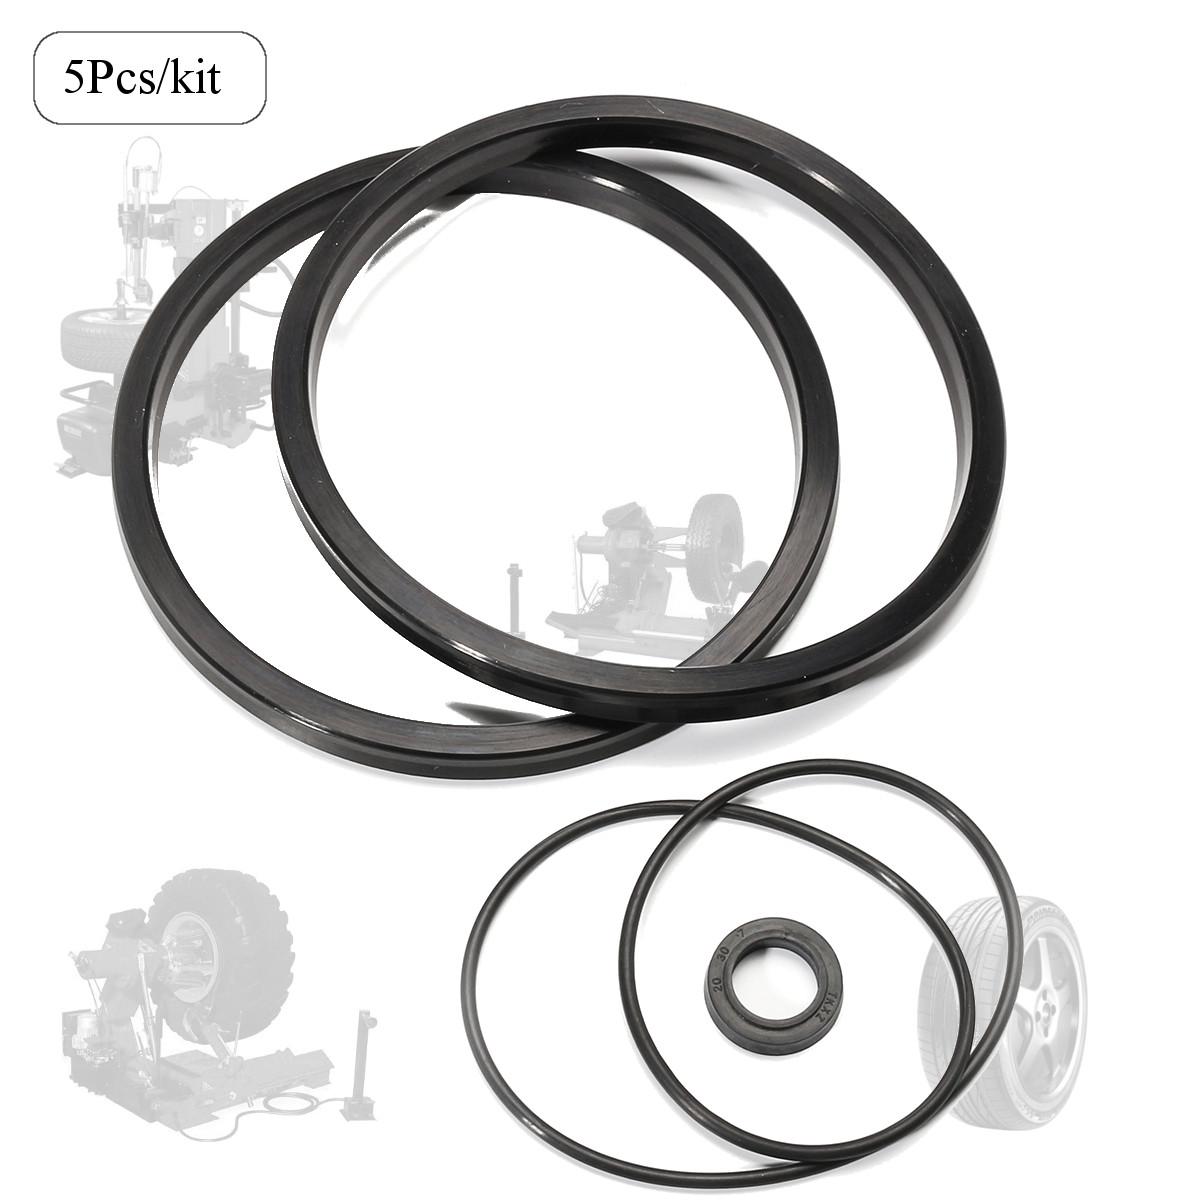 Rubber Seal Bead Breaker Loosener For Ranger RX850 RX950 Tire Changer Machine Cylinder Seal Kits